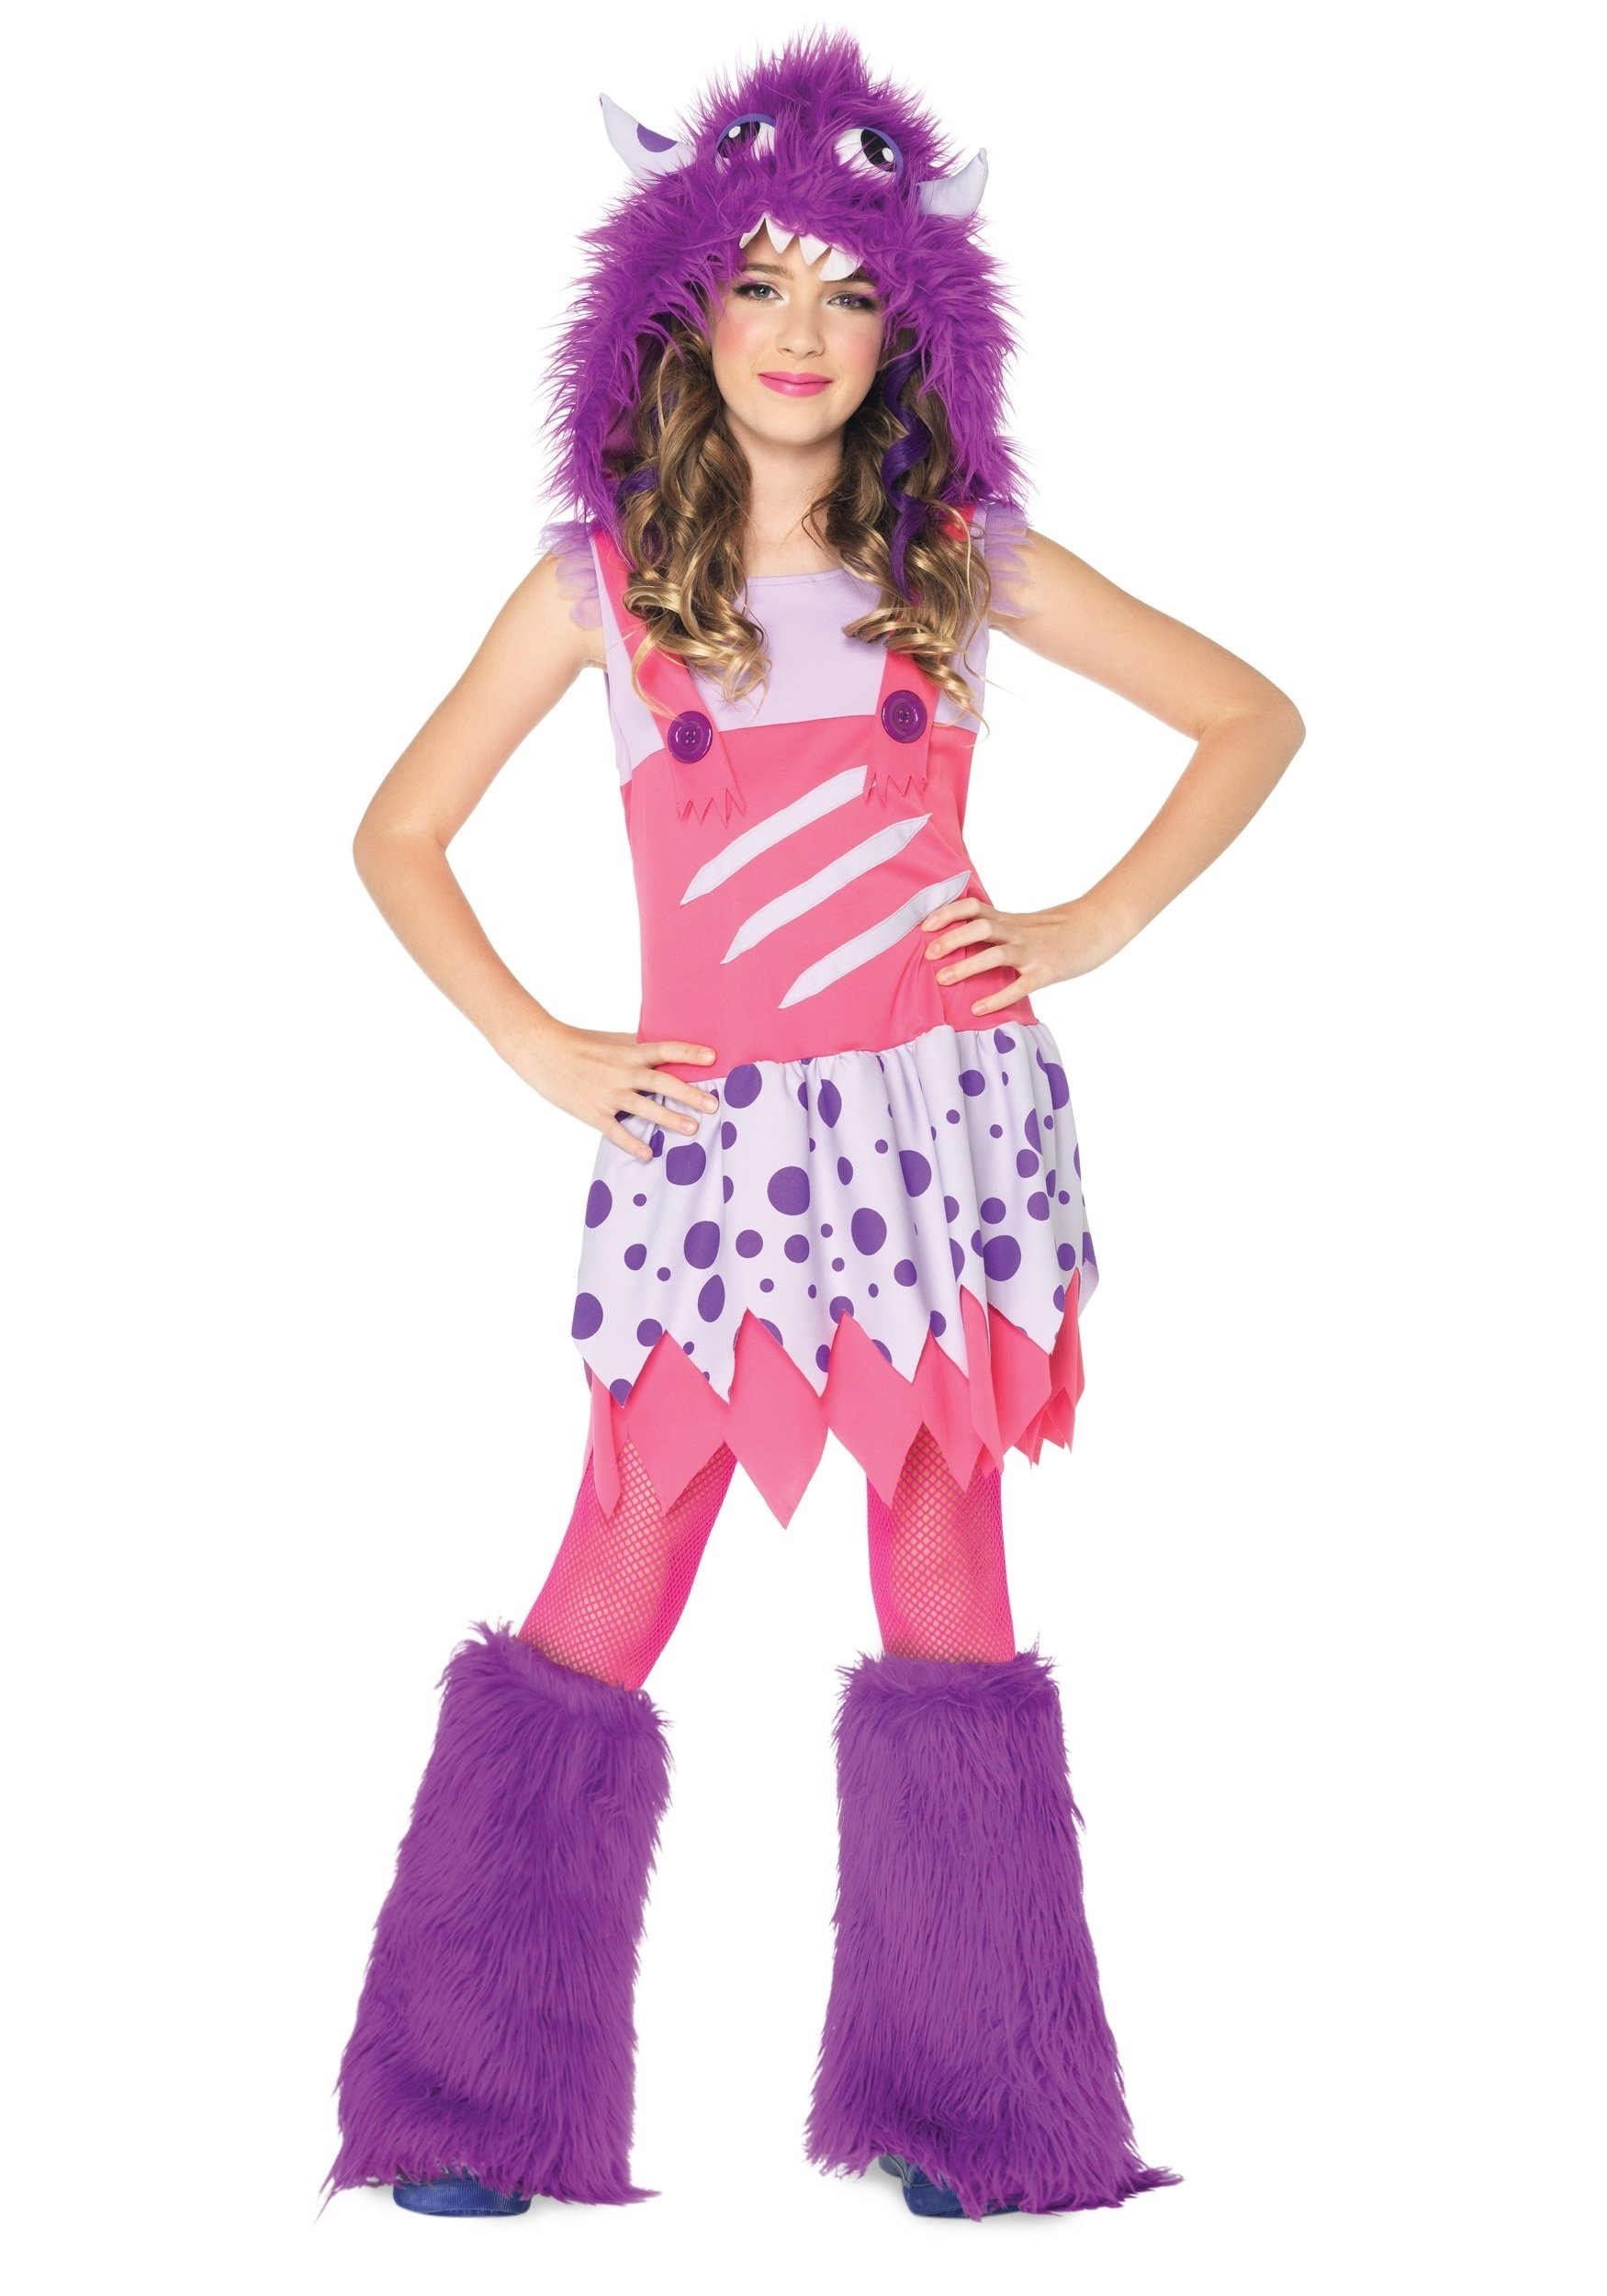 10 Wonderful Cute Teenage Girl Costume Ideas sweet teen elmo costume teen elmo costume sesame street dress